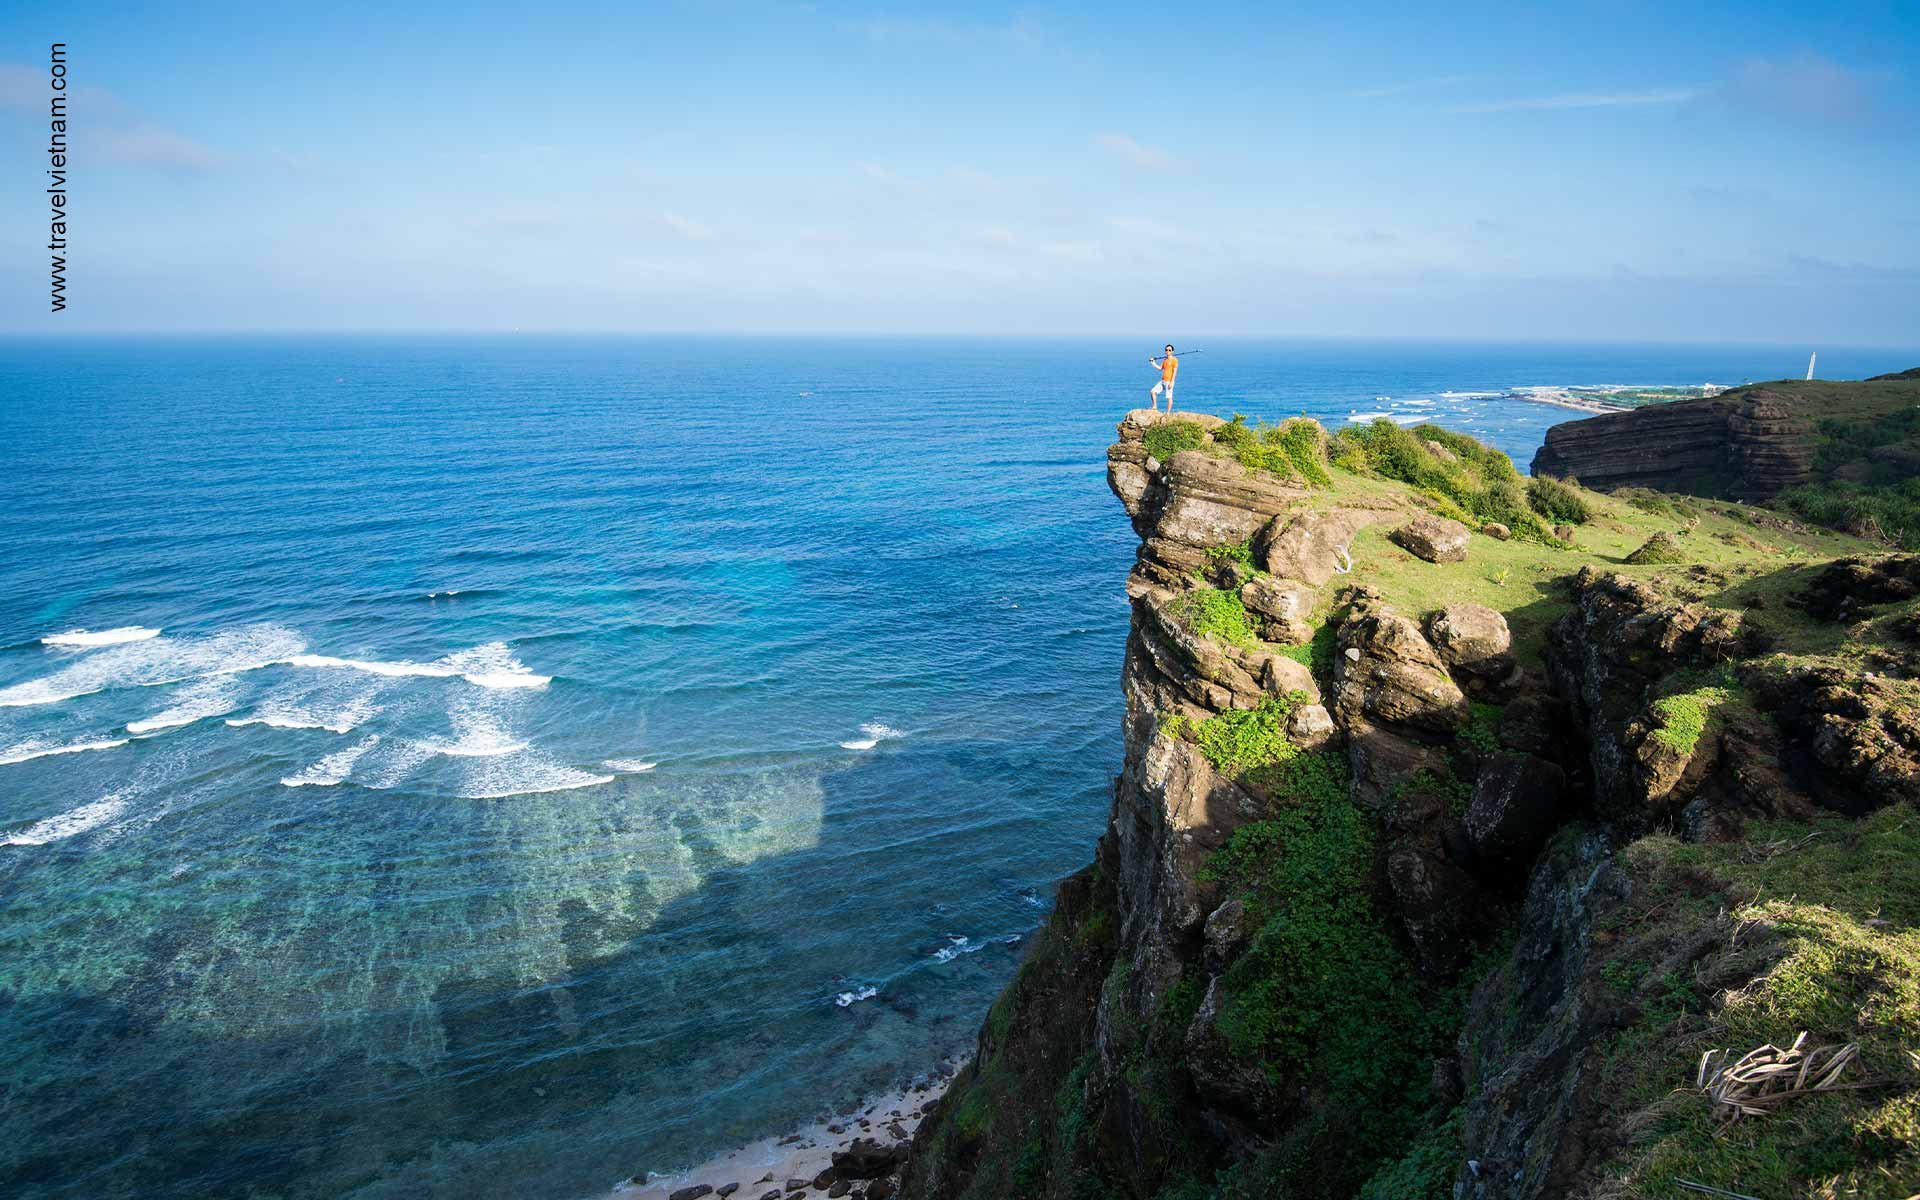 Vietnam's Islands appealing to foreign travelers